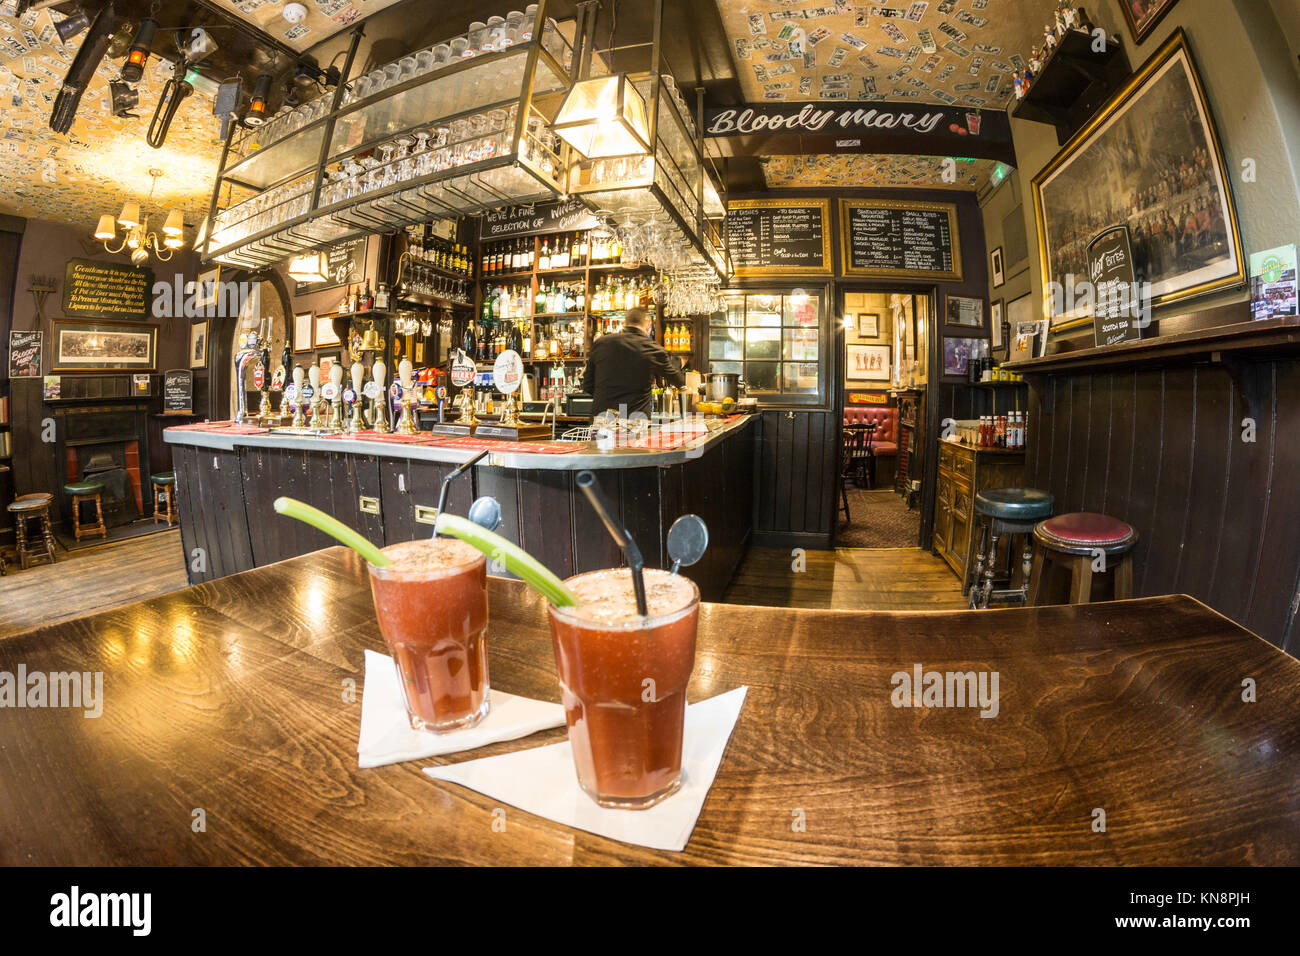 Bloody Mary , The Grenadier Pub, built in 1720, Mayfair, London, UK - Stock Image